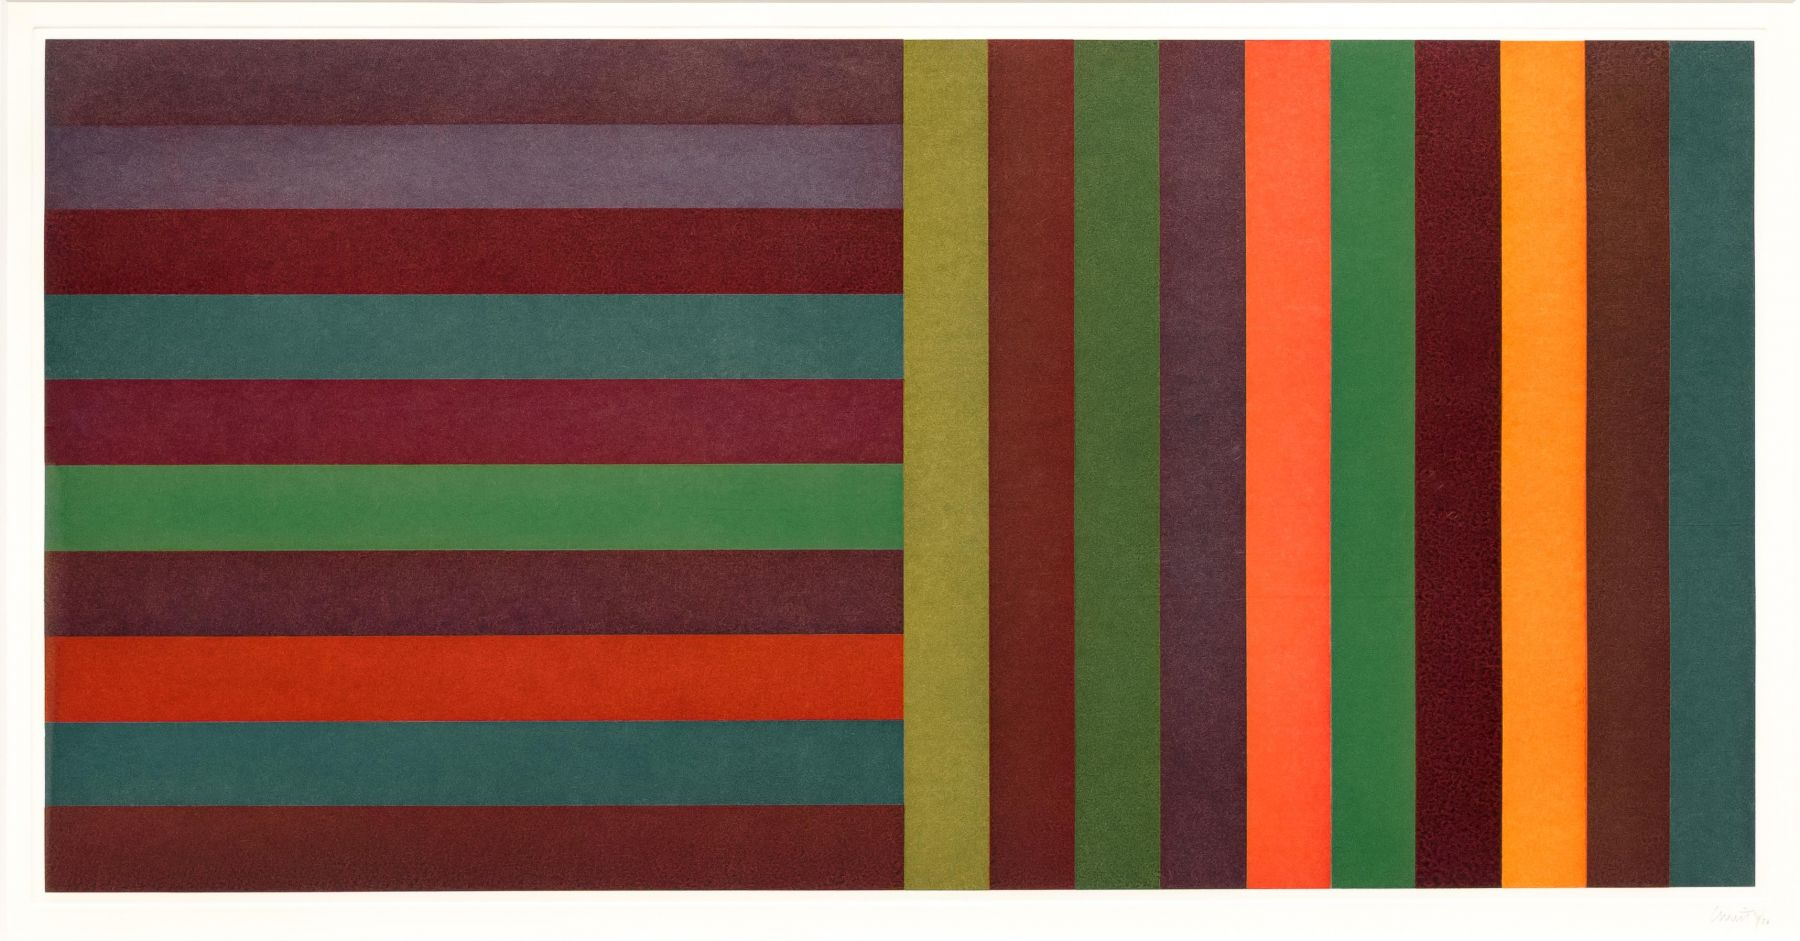 Horizontal Color Bands and Vertical Color Bands II by Sol LeWitt